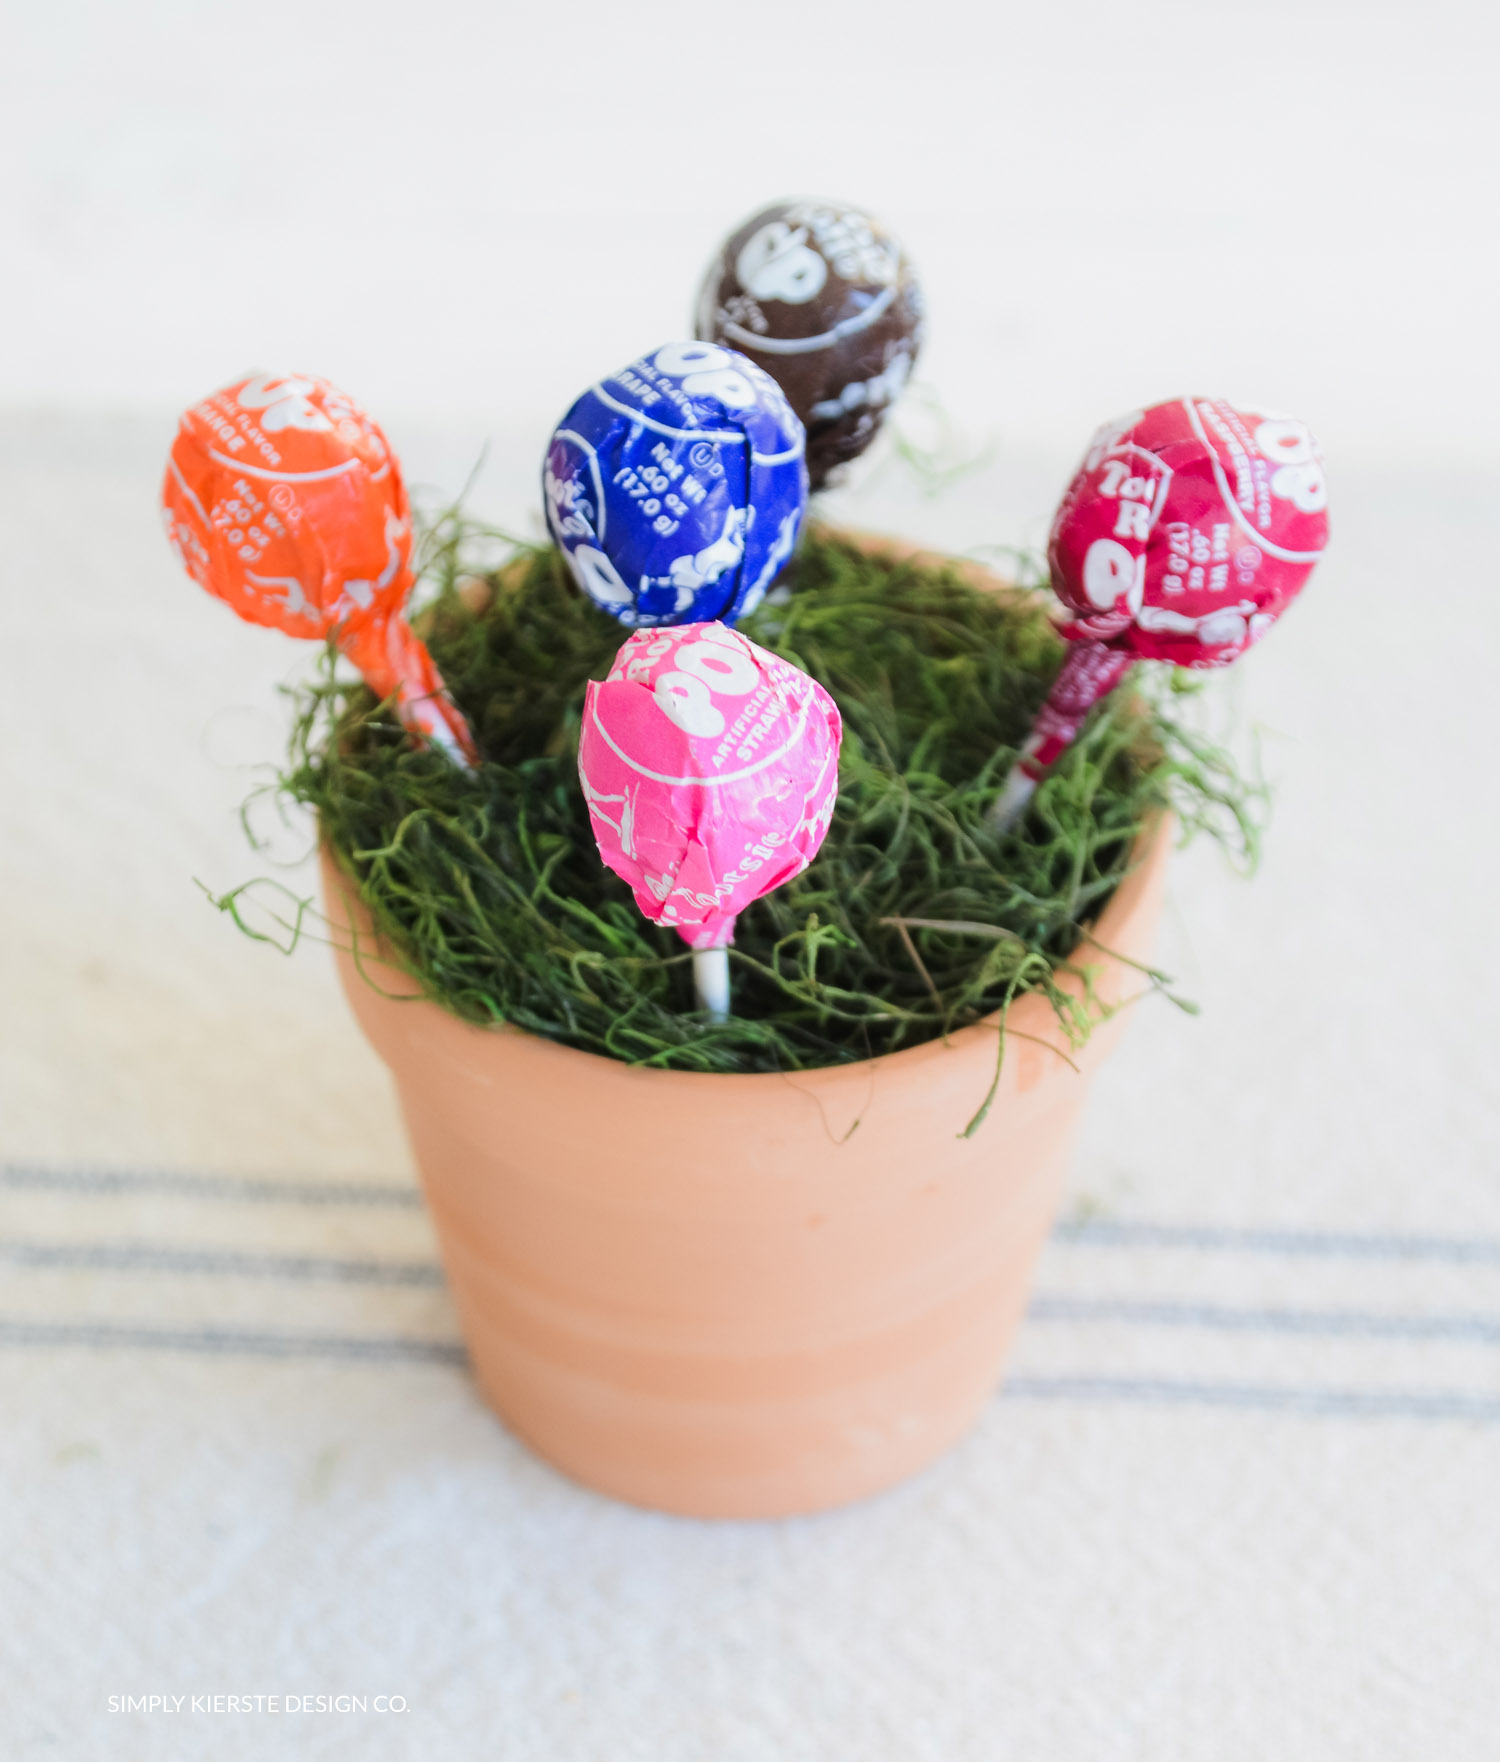 Magic Jelly Beans & Lollipop Garden | Easter Tradition | oldsaltfarm.com